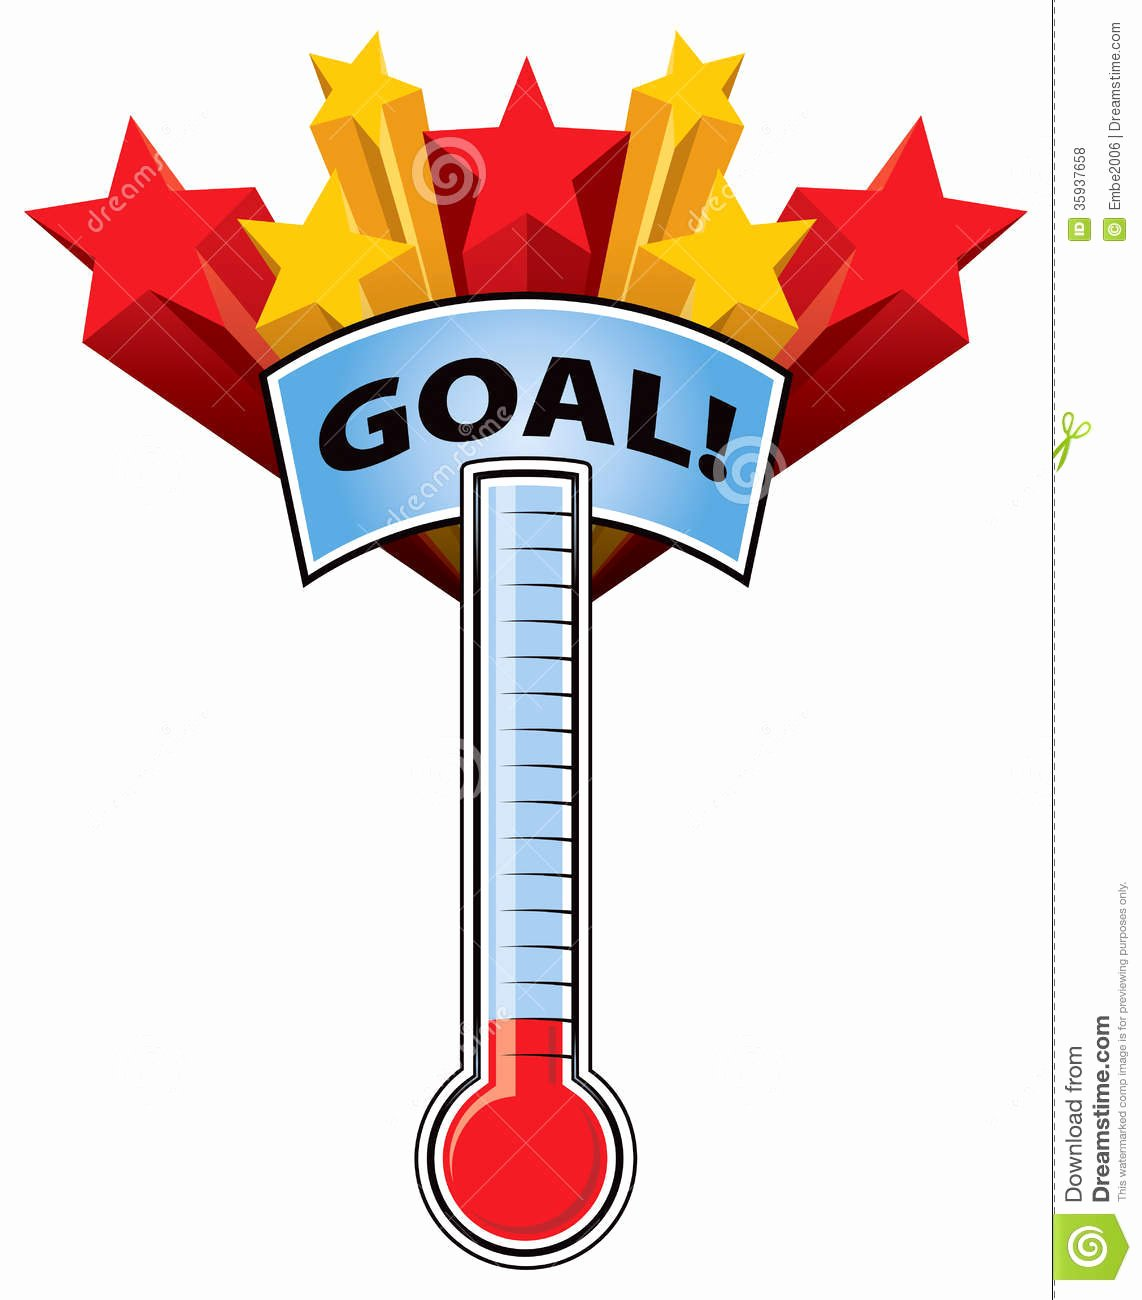 Fundraising thermometer Image Inspirational Fundraising thermometer Clip Art